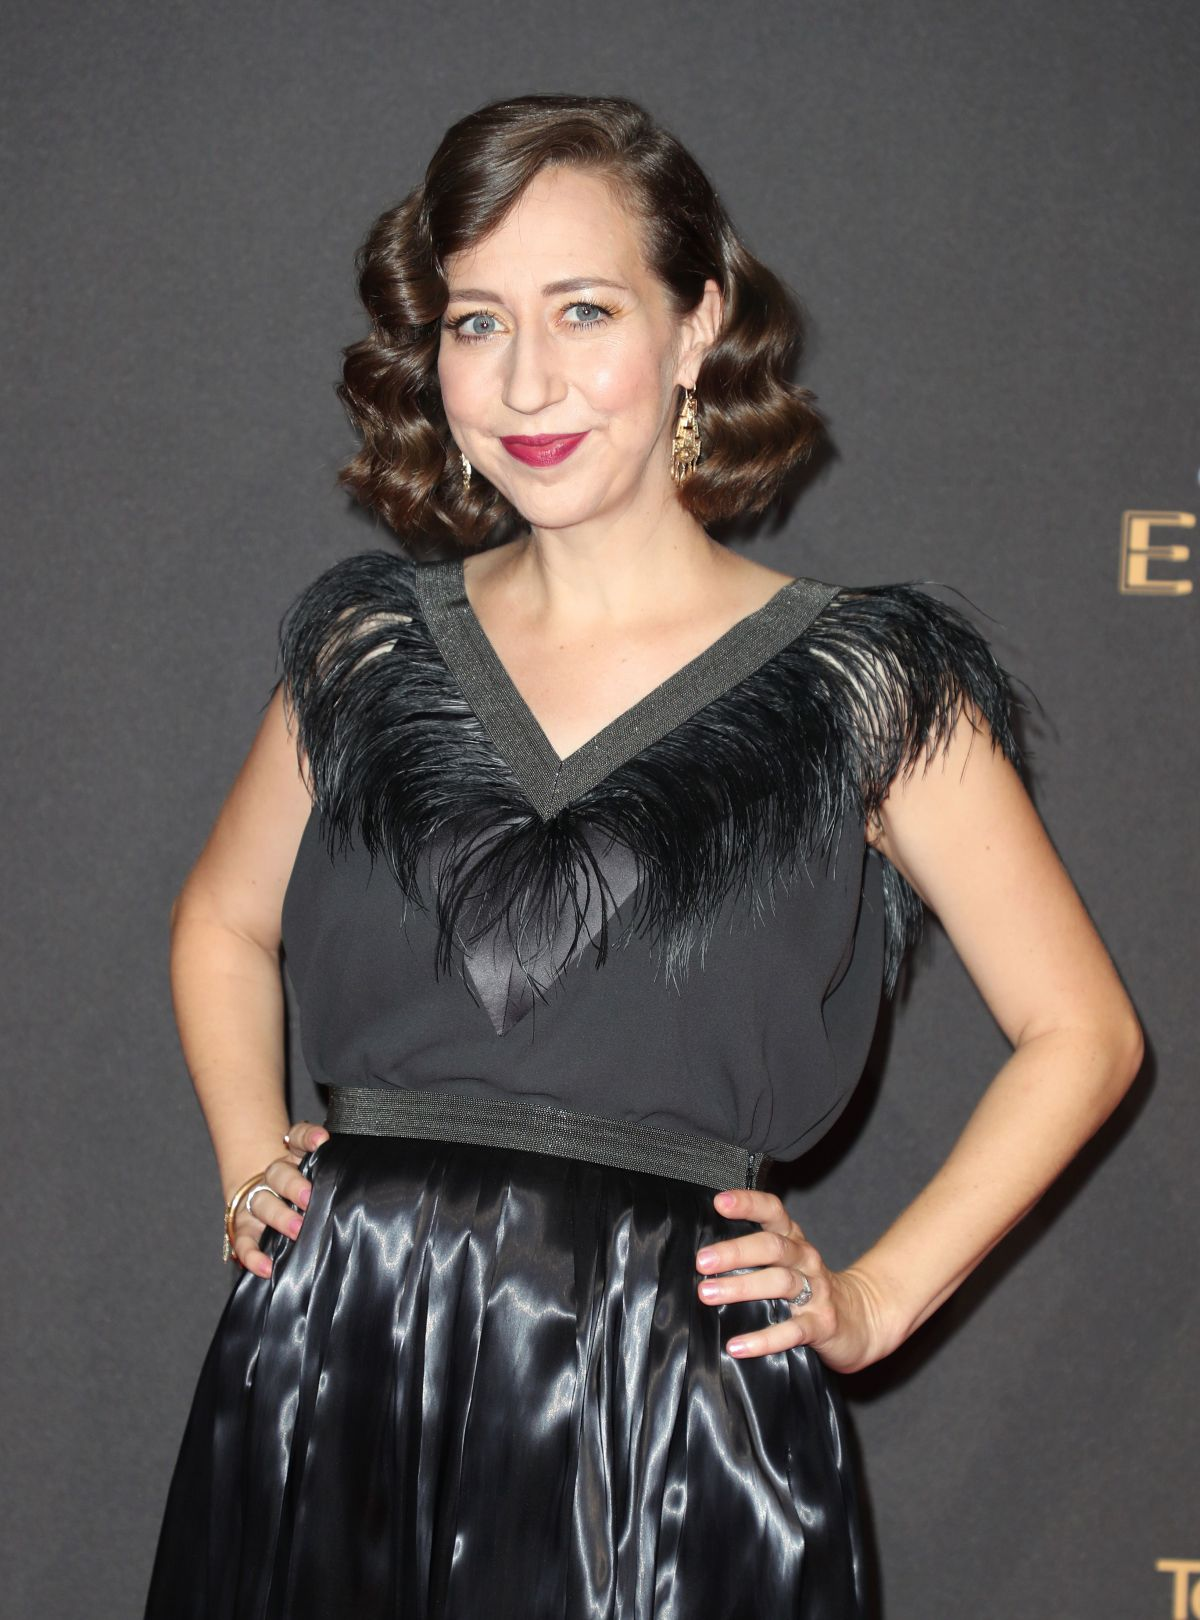 KRISTEN SCHAAL at Creative Arts Emmy Awards in Los Angeles 09/10/2017